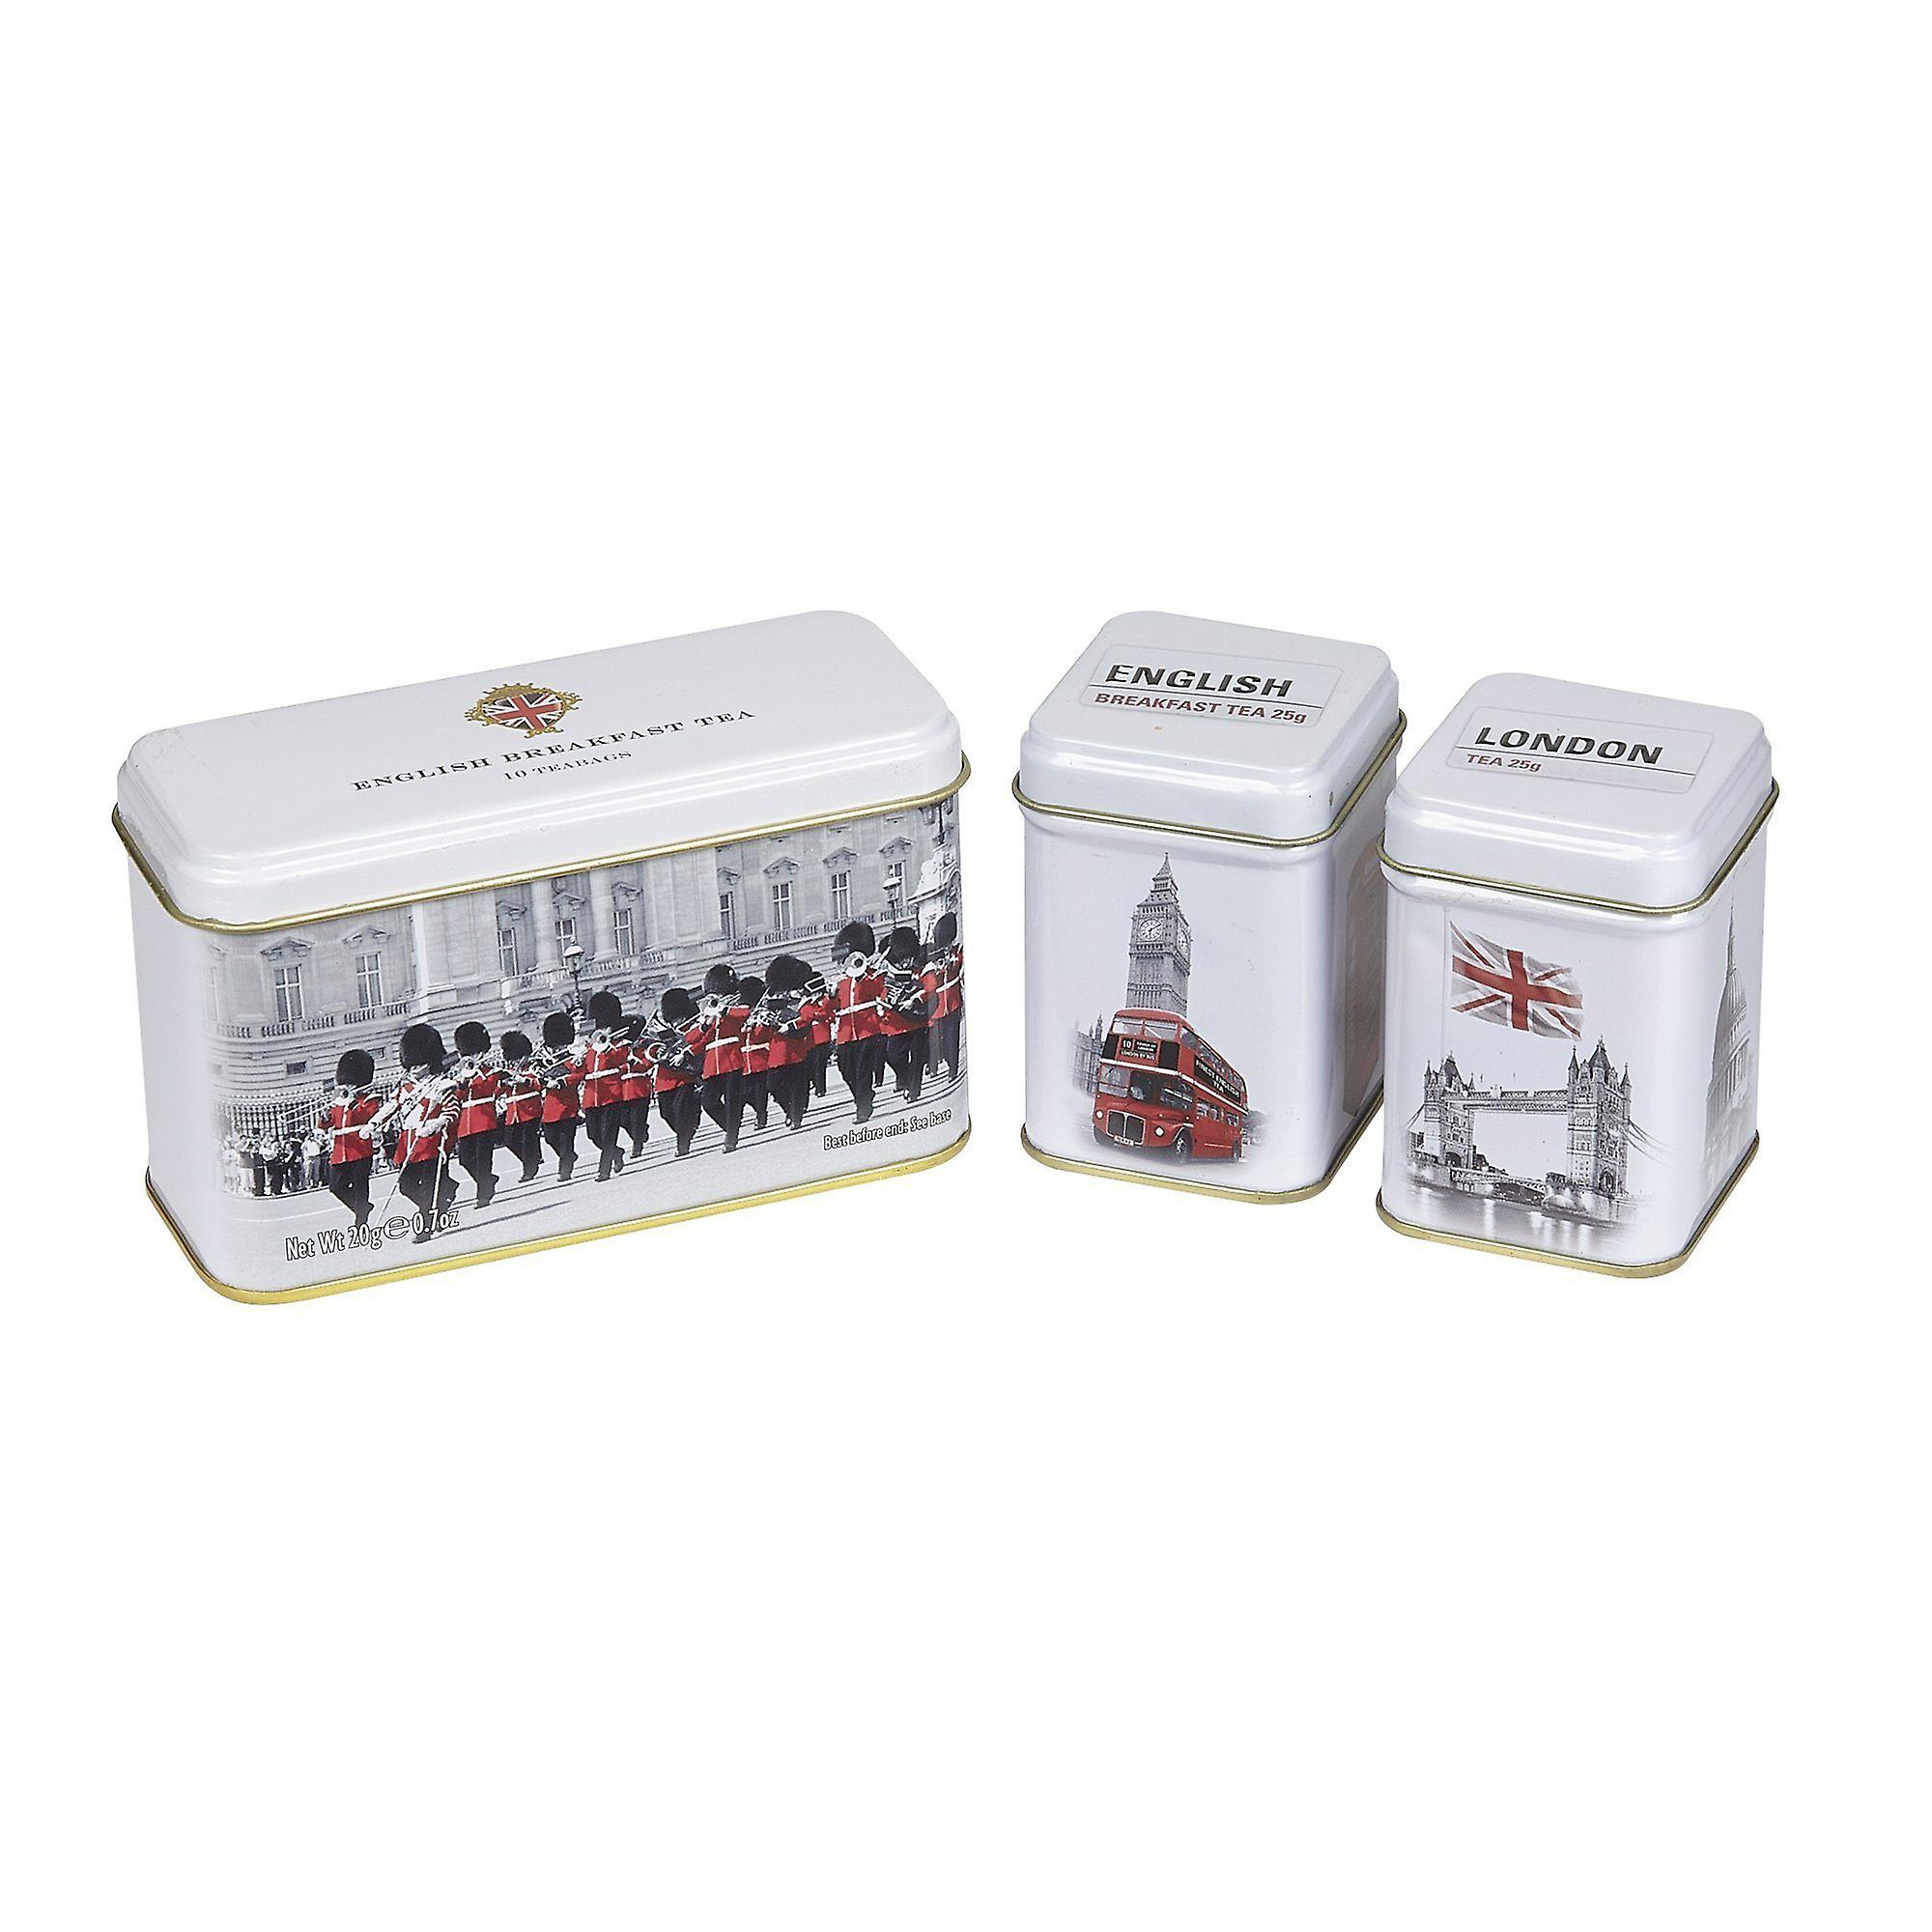 Traditions of england triple tea selection mini tin gift pack